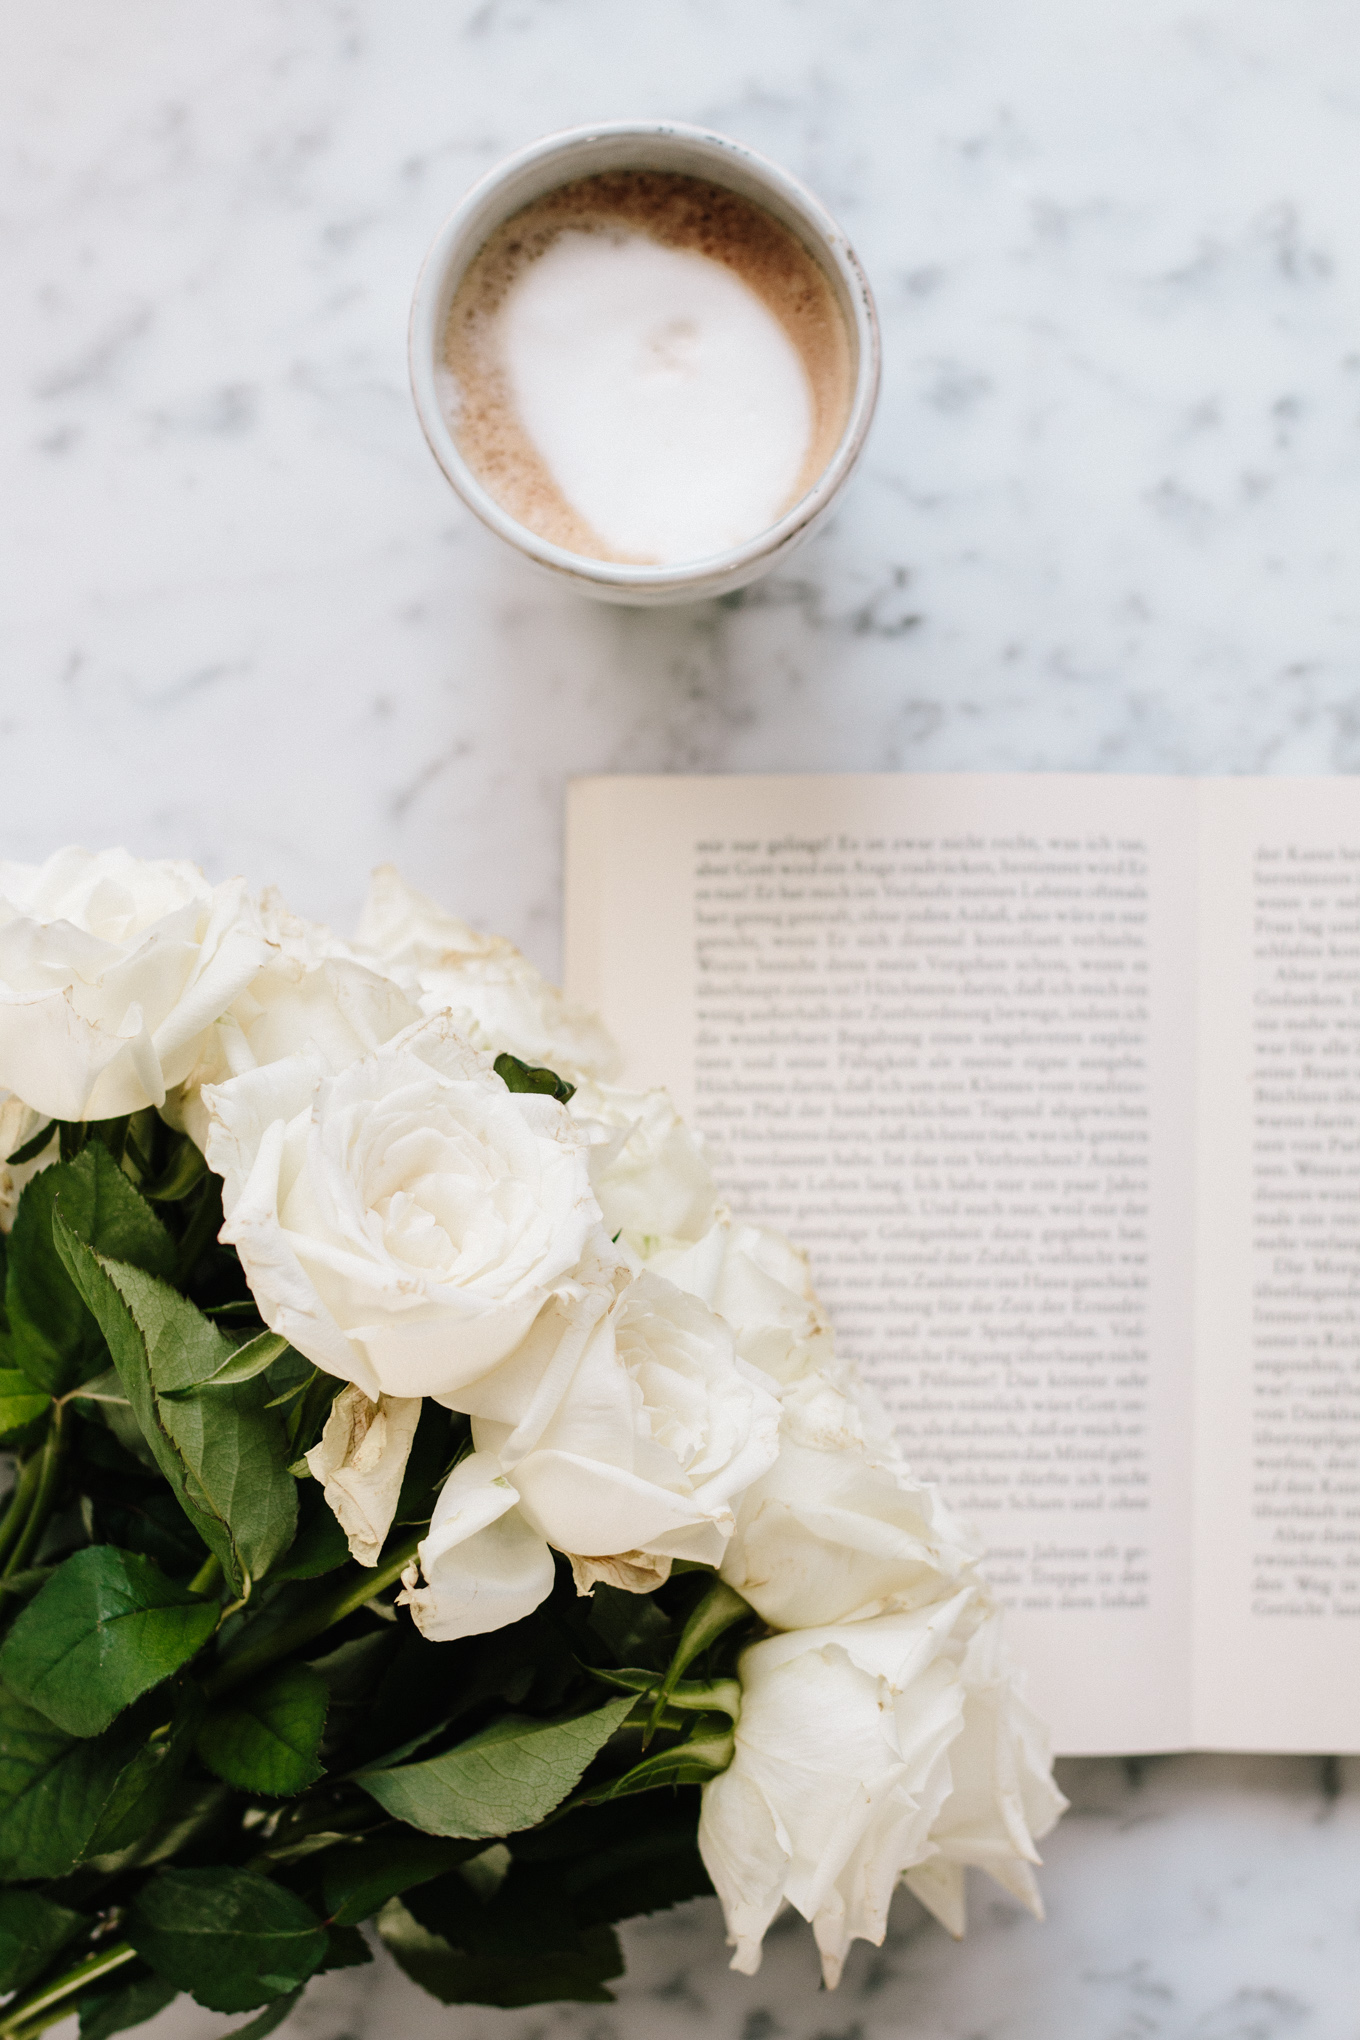 The Best Reads For Spring | The Daily Dose